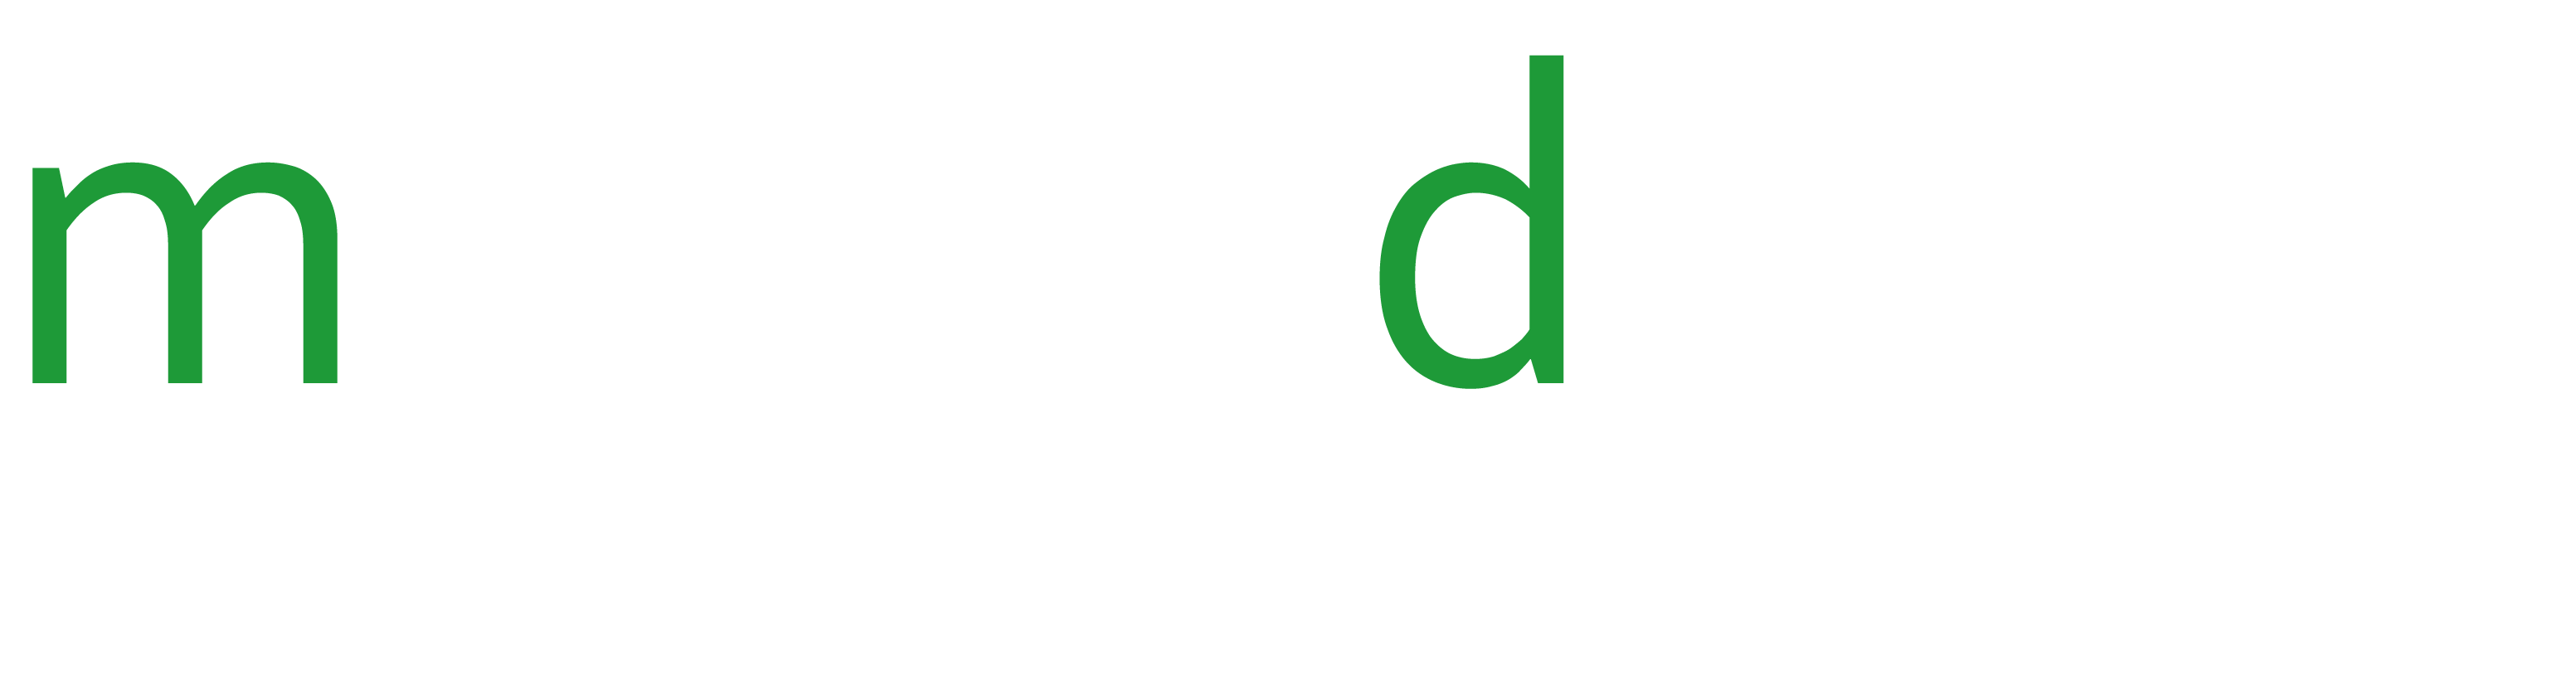 Logo müllersdesign - Messe und (e)motion